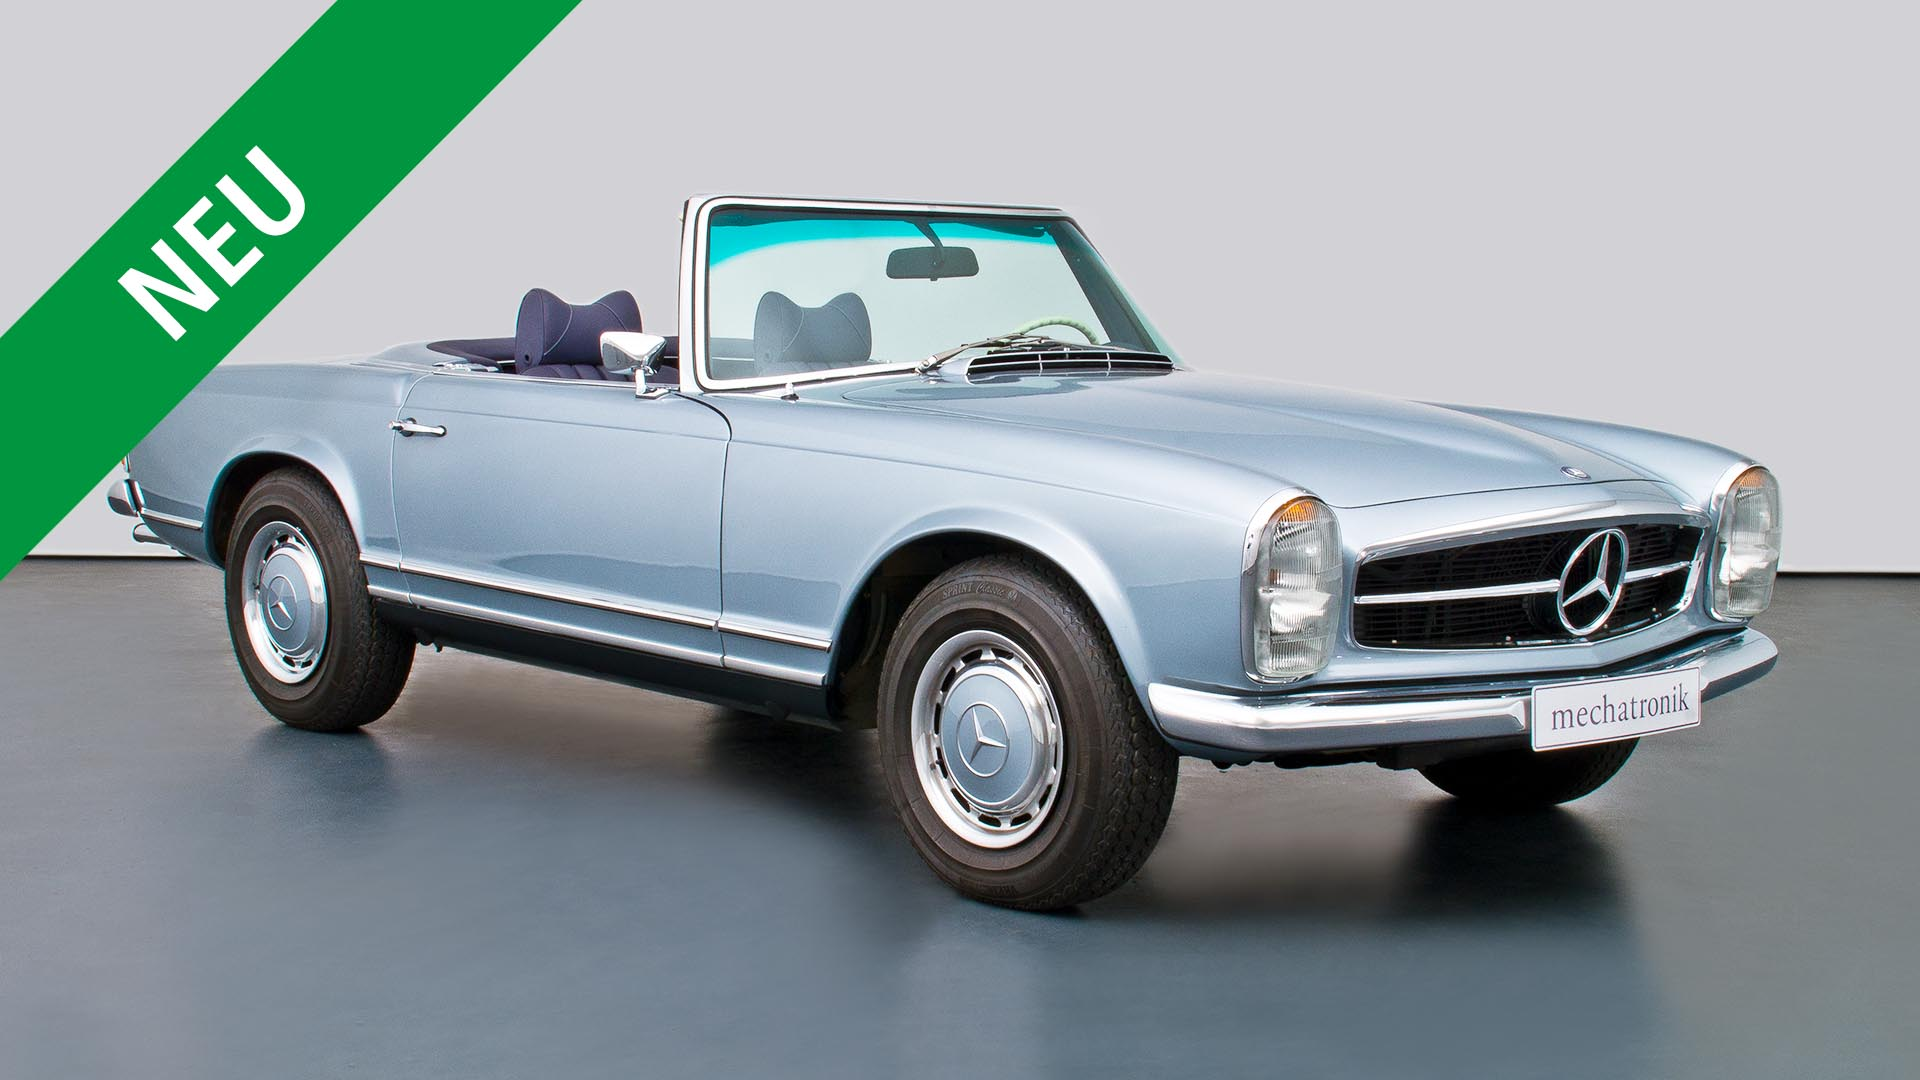 Mercedes-Benz W 113 280 SL Roadster